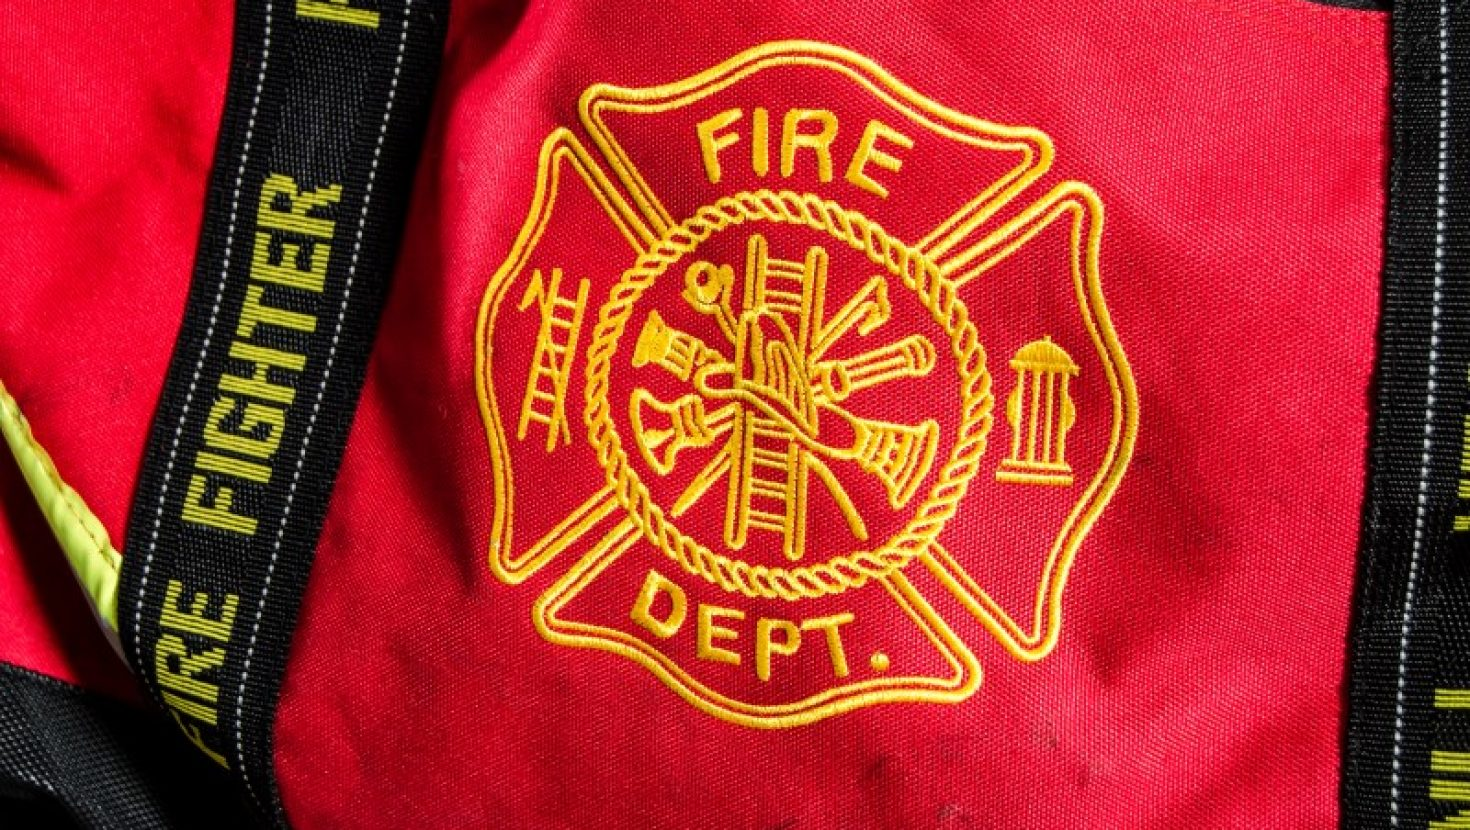 Update to our Citizens regarding the Pendleton Volunteer Fire Department